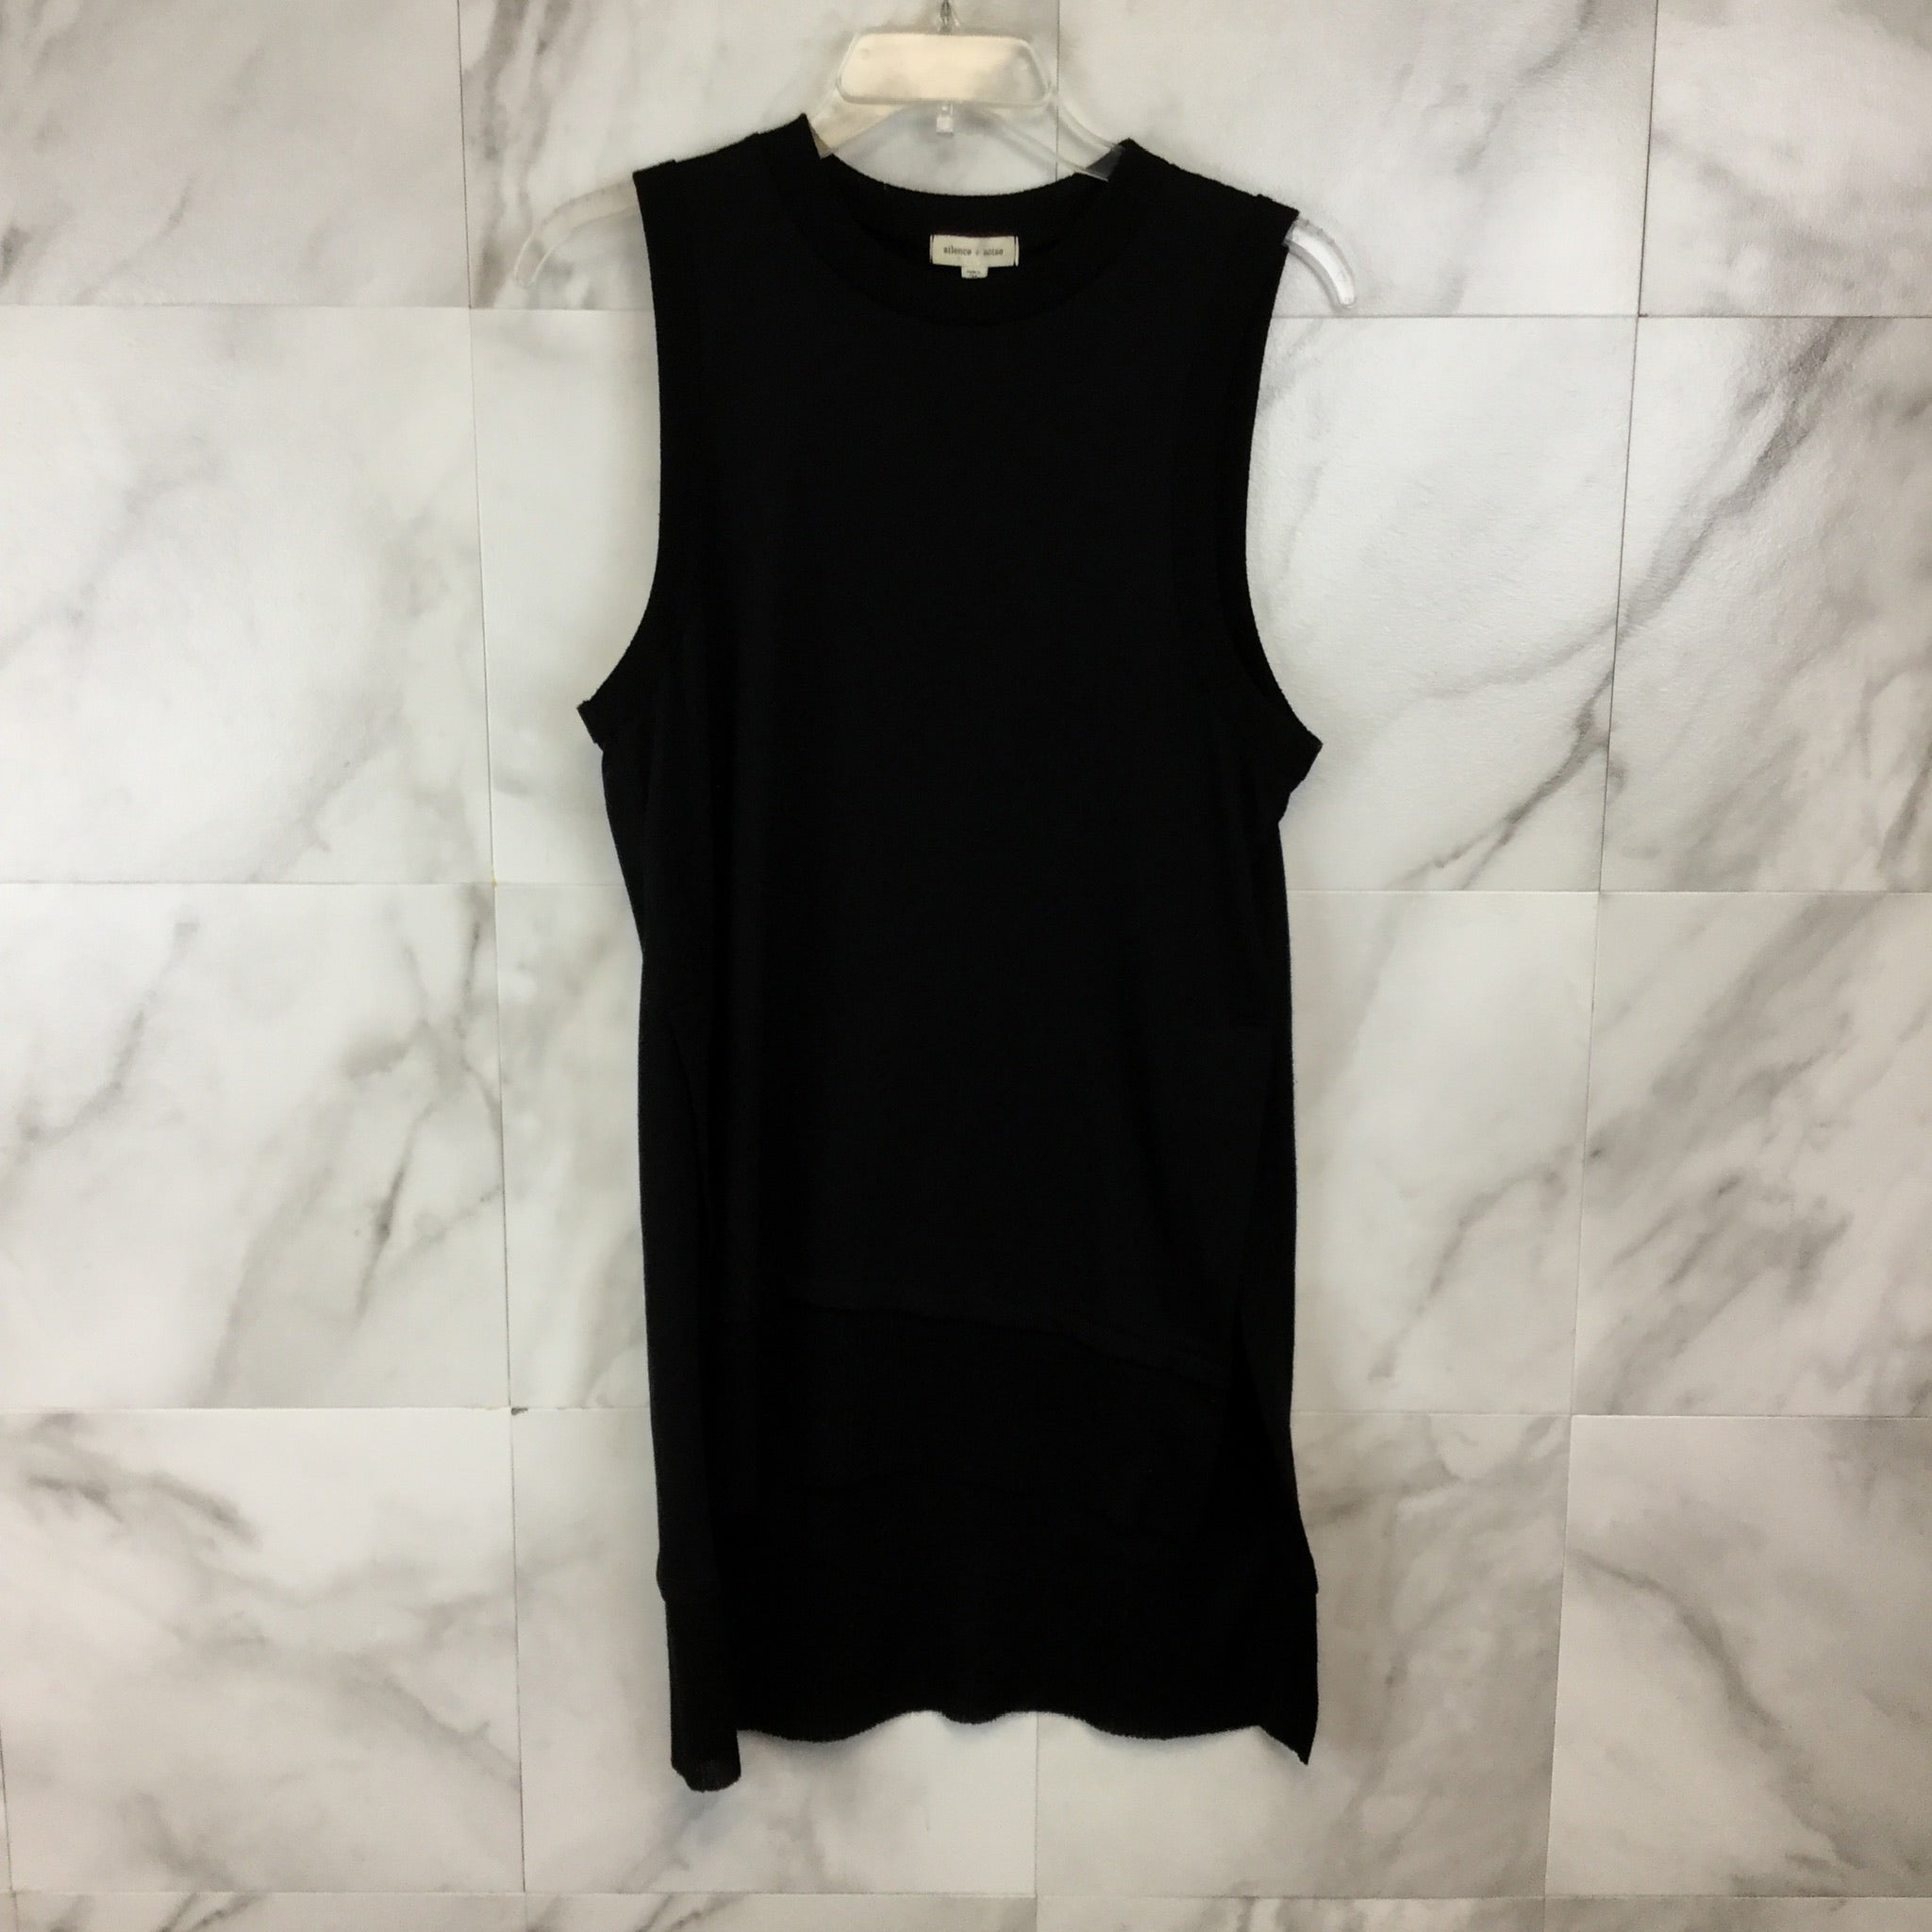 Urban Outfitters Silence + Noise Kelly High/Low Tunic Tank Top - Size M